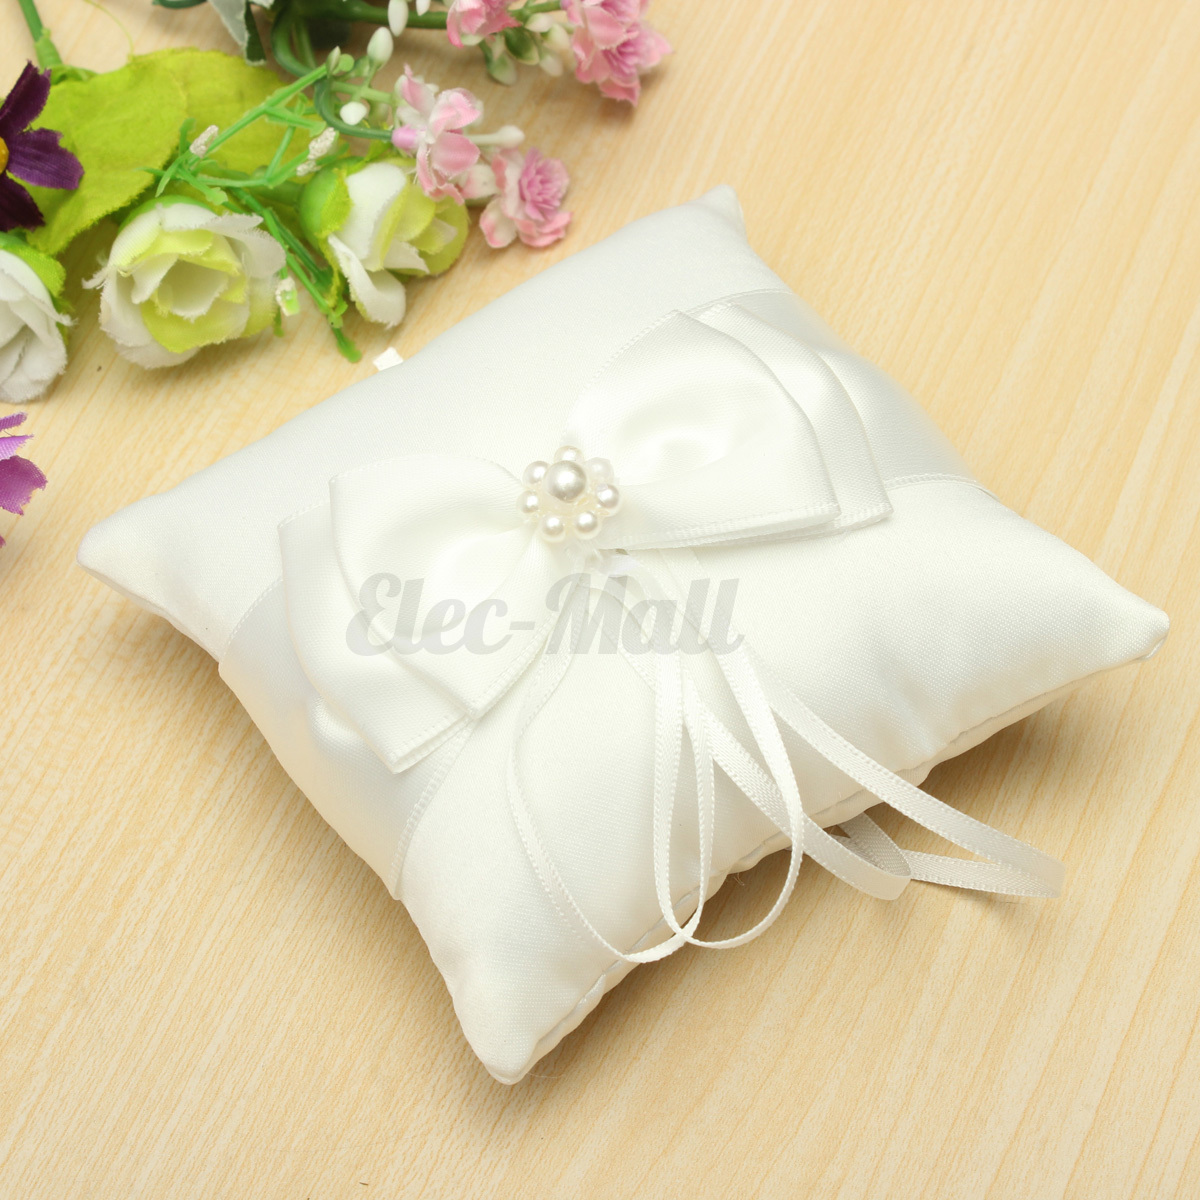 about on images corners ideas wedding pinterest rings pillow inspiration holder ring enjoyable download